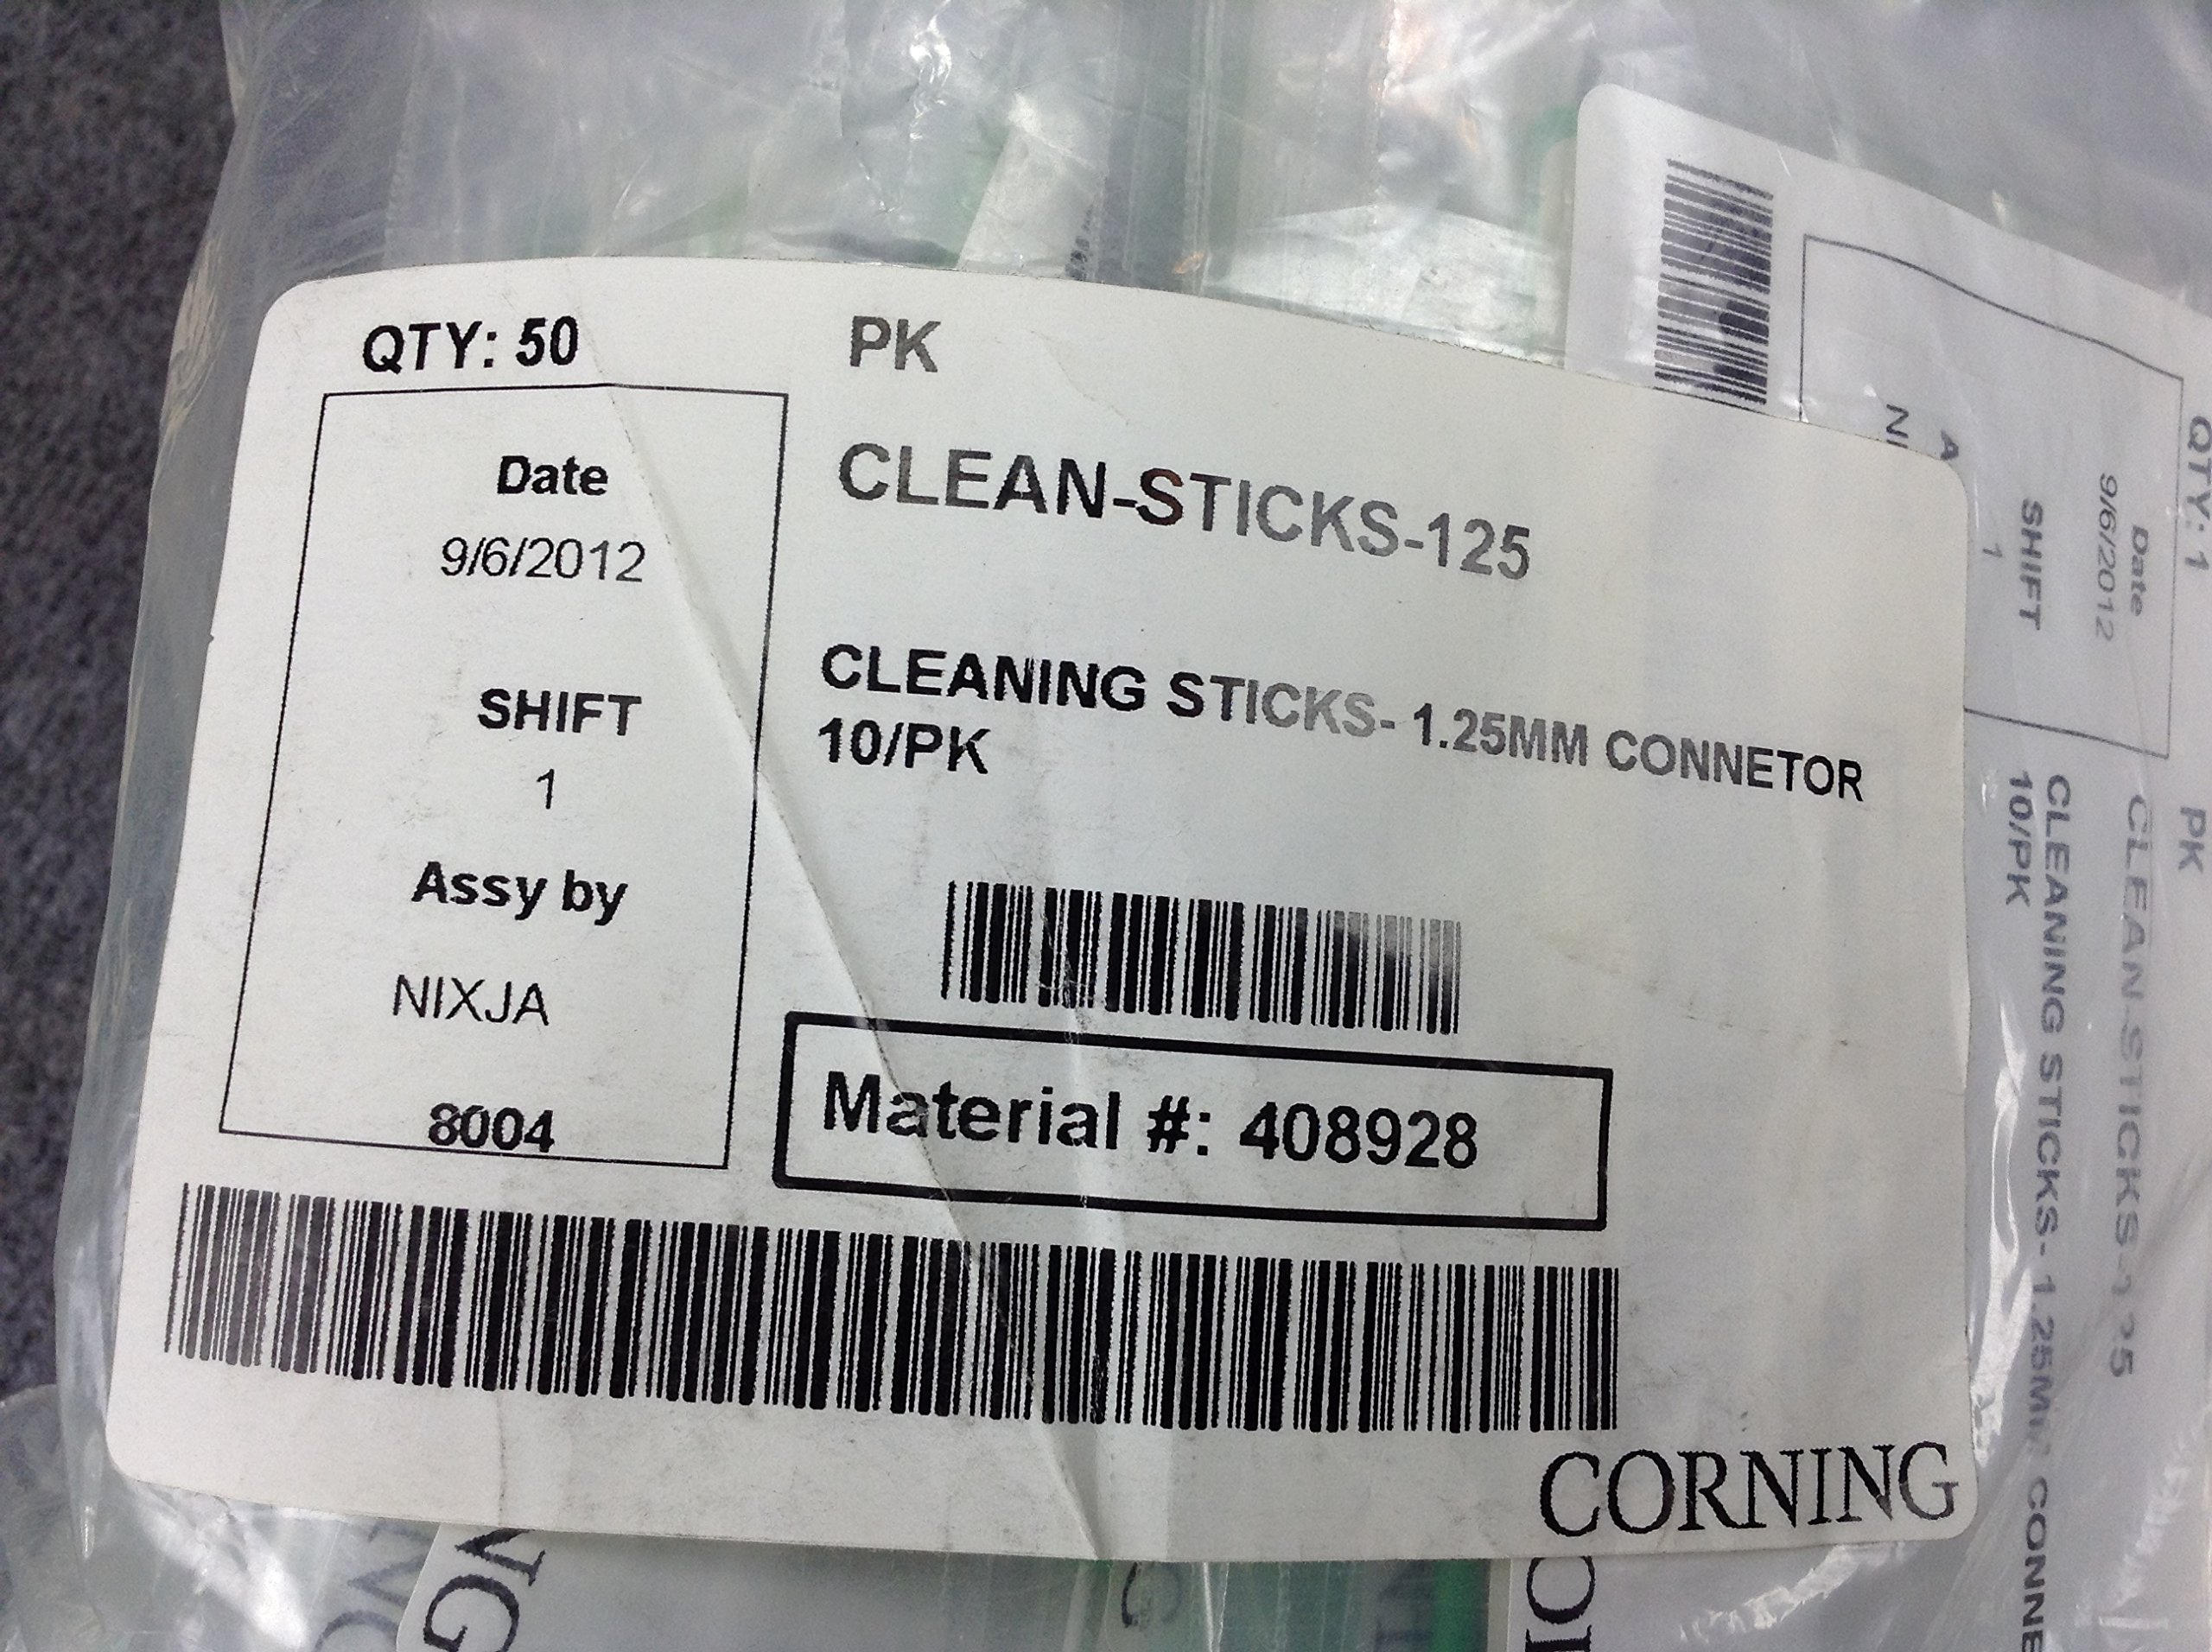 Corning Clean-Sticks-125 Fiber Optic Cleaning Sticks 10 Pack; 1.25Mm Connectors